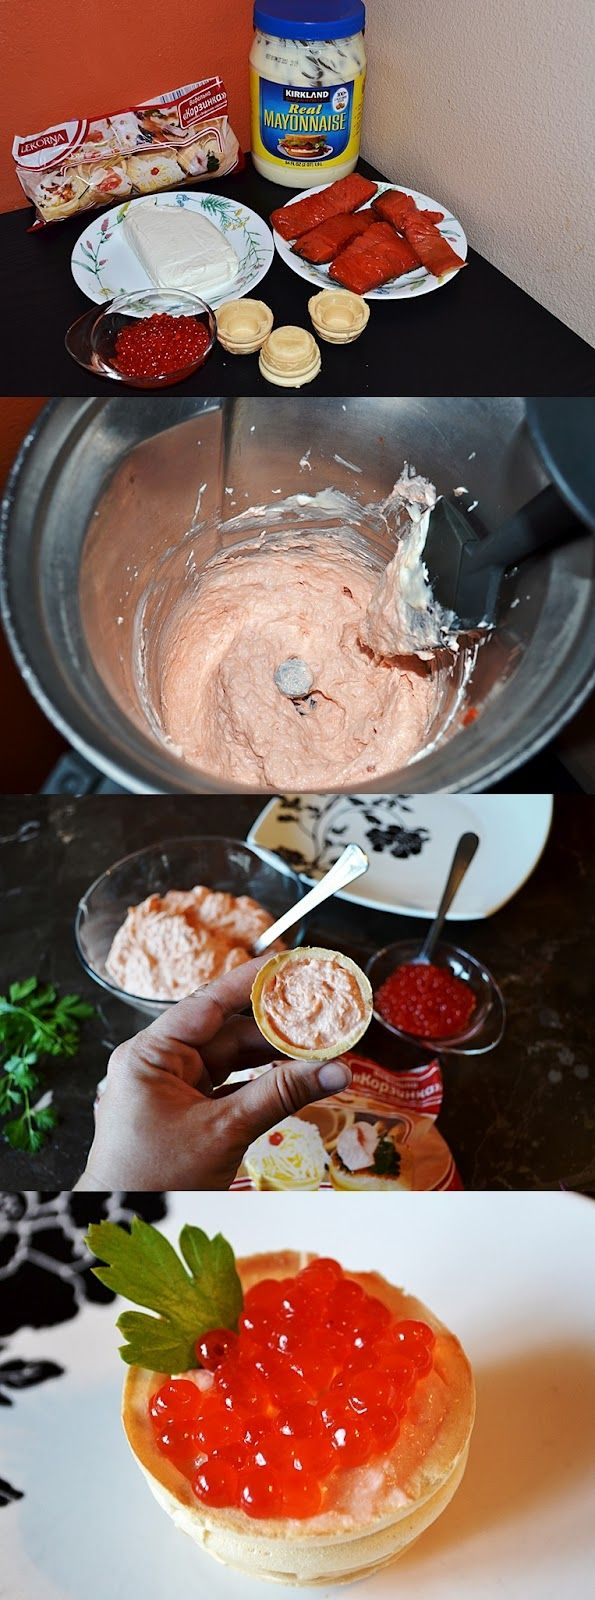 Leas Cooking: Smoked Salmon with Caviar Appetizer